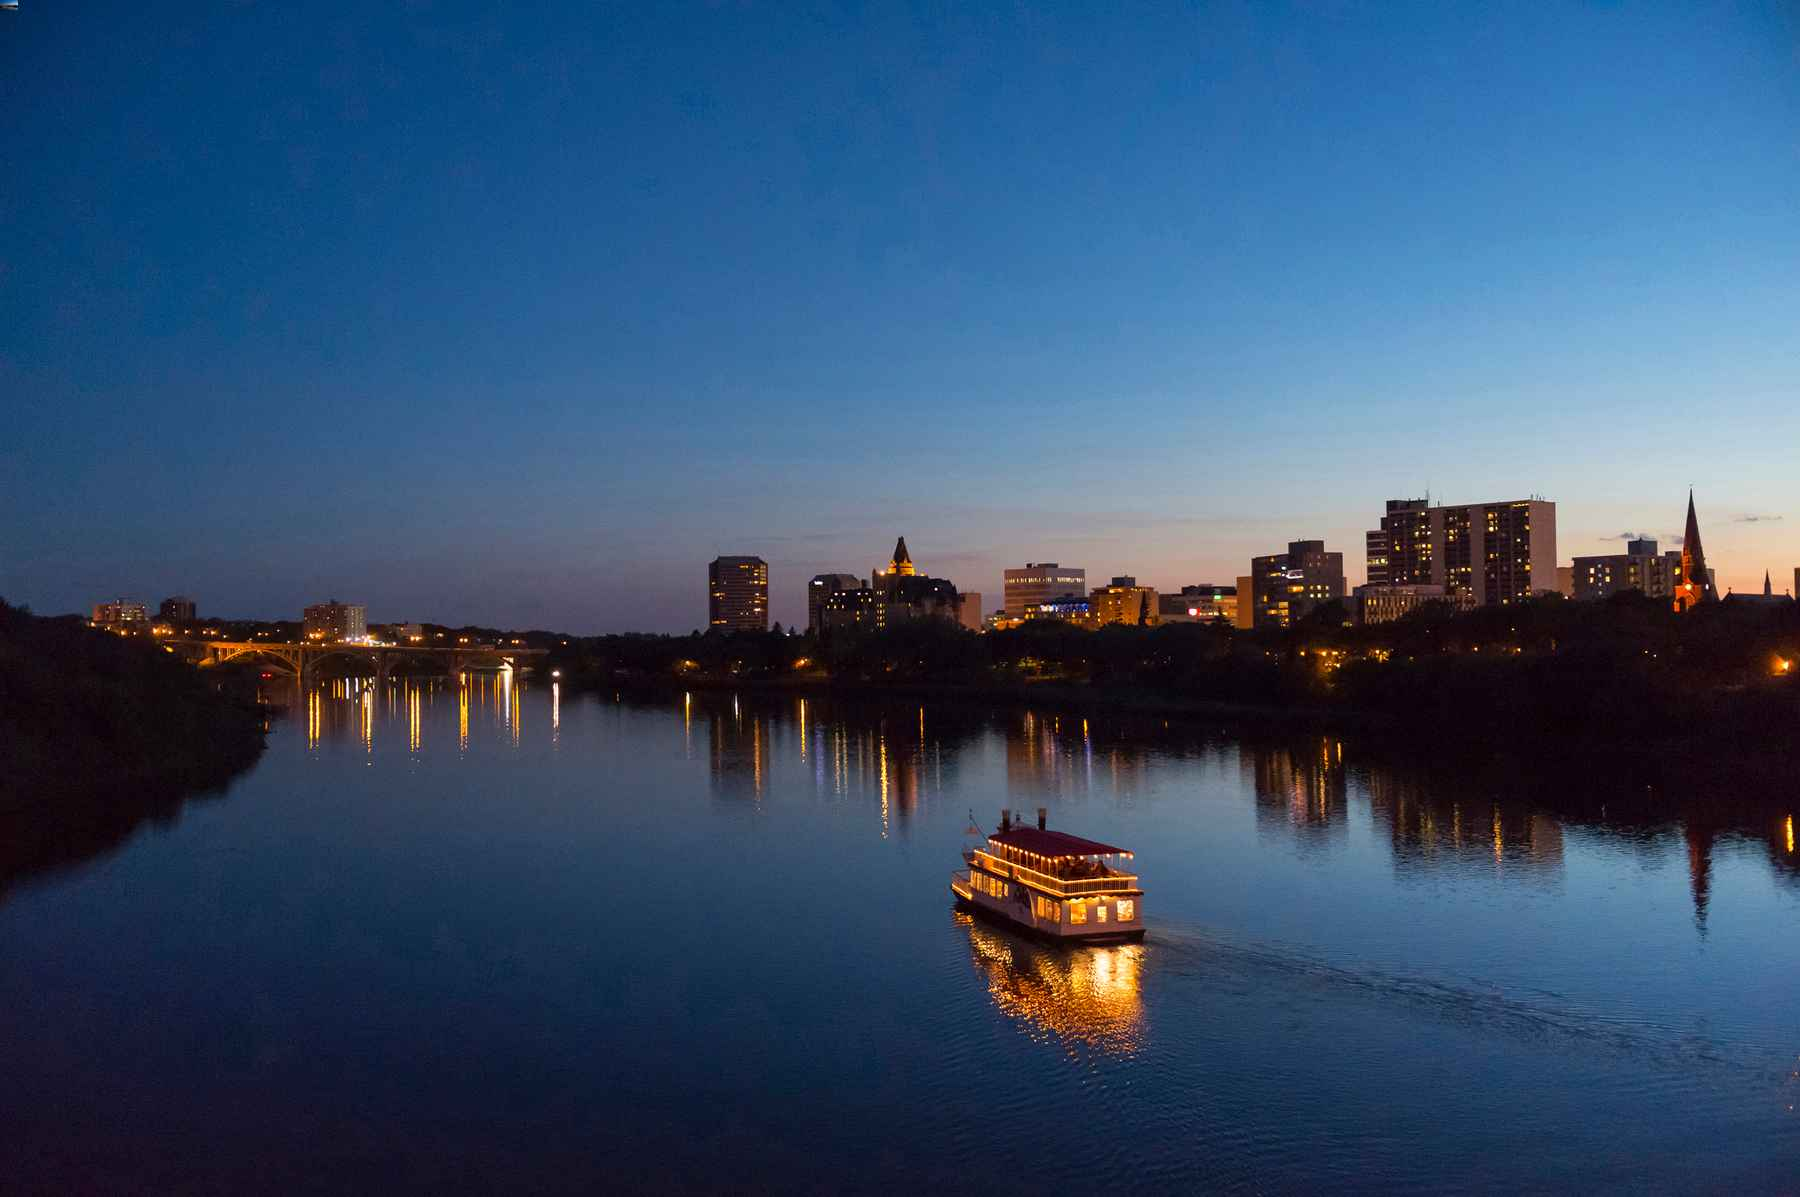 Prairie River Cruises Boat on the river in Saskatoon